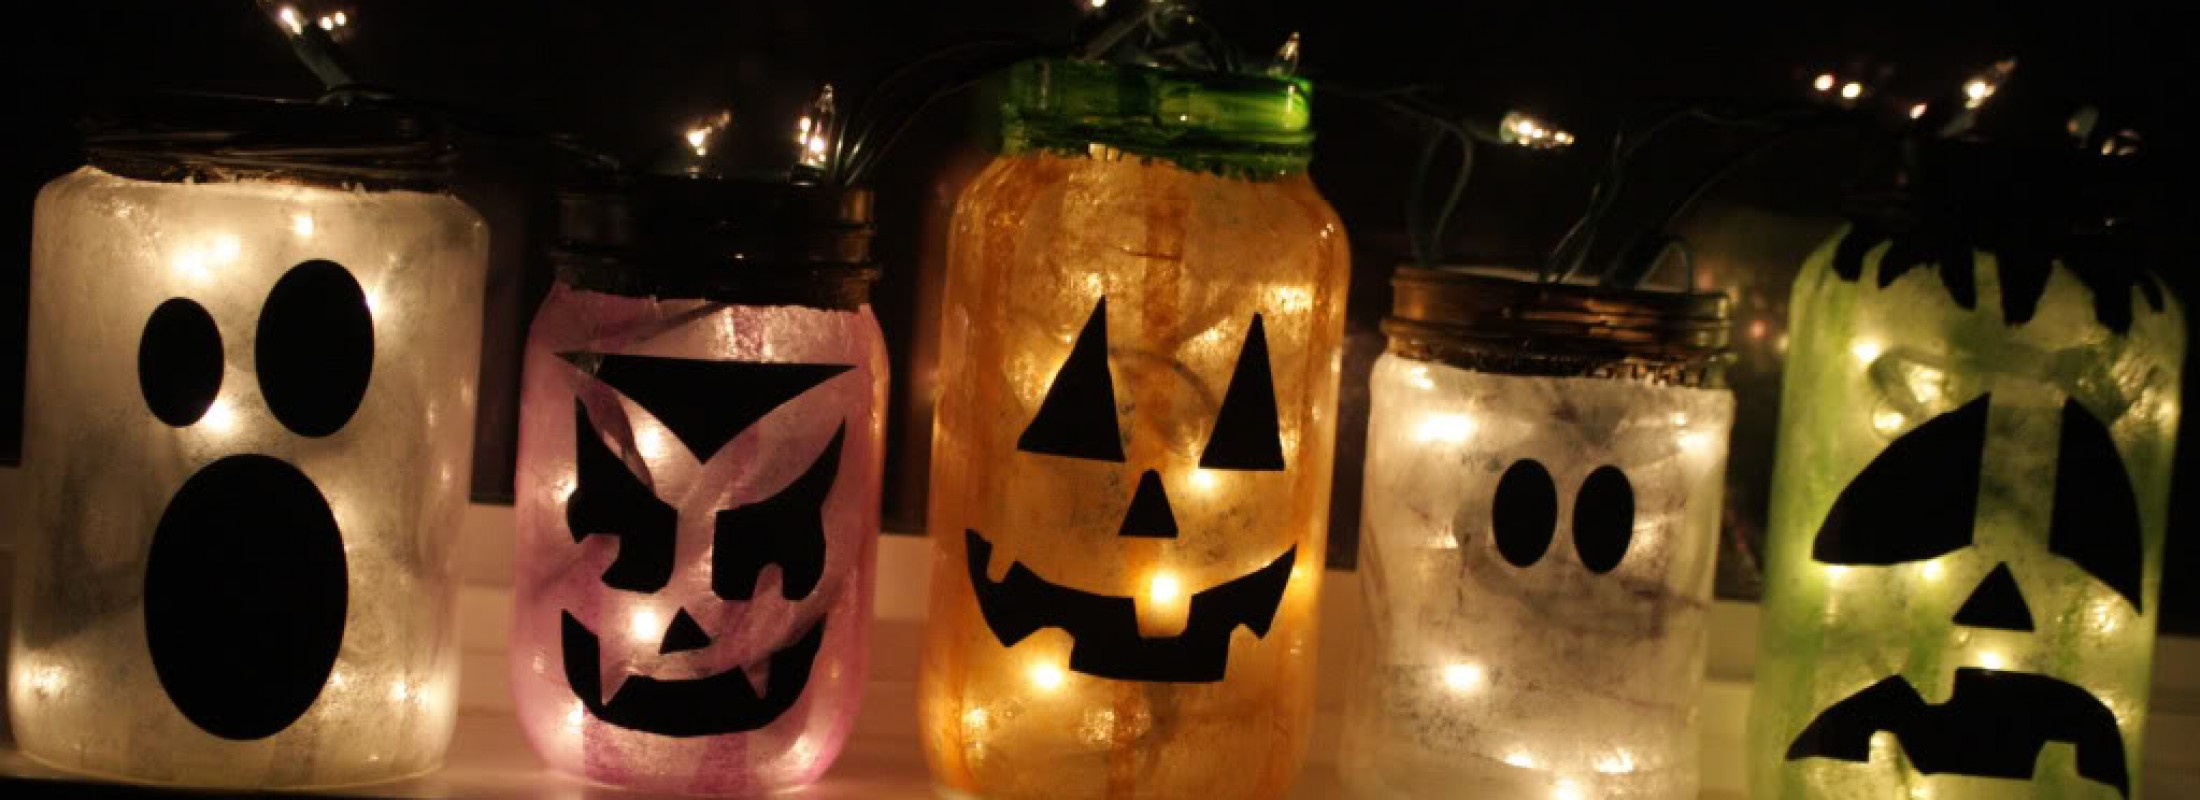 homemade halloween fun crafts that are simple - Homemade Halloween Party Decorations